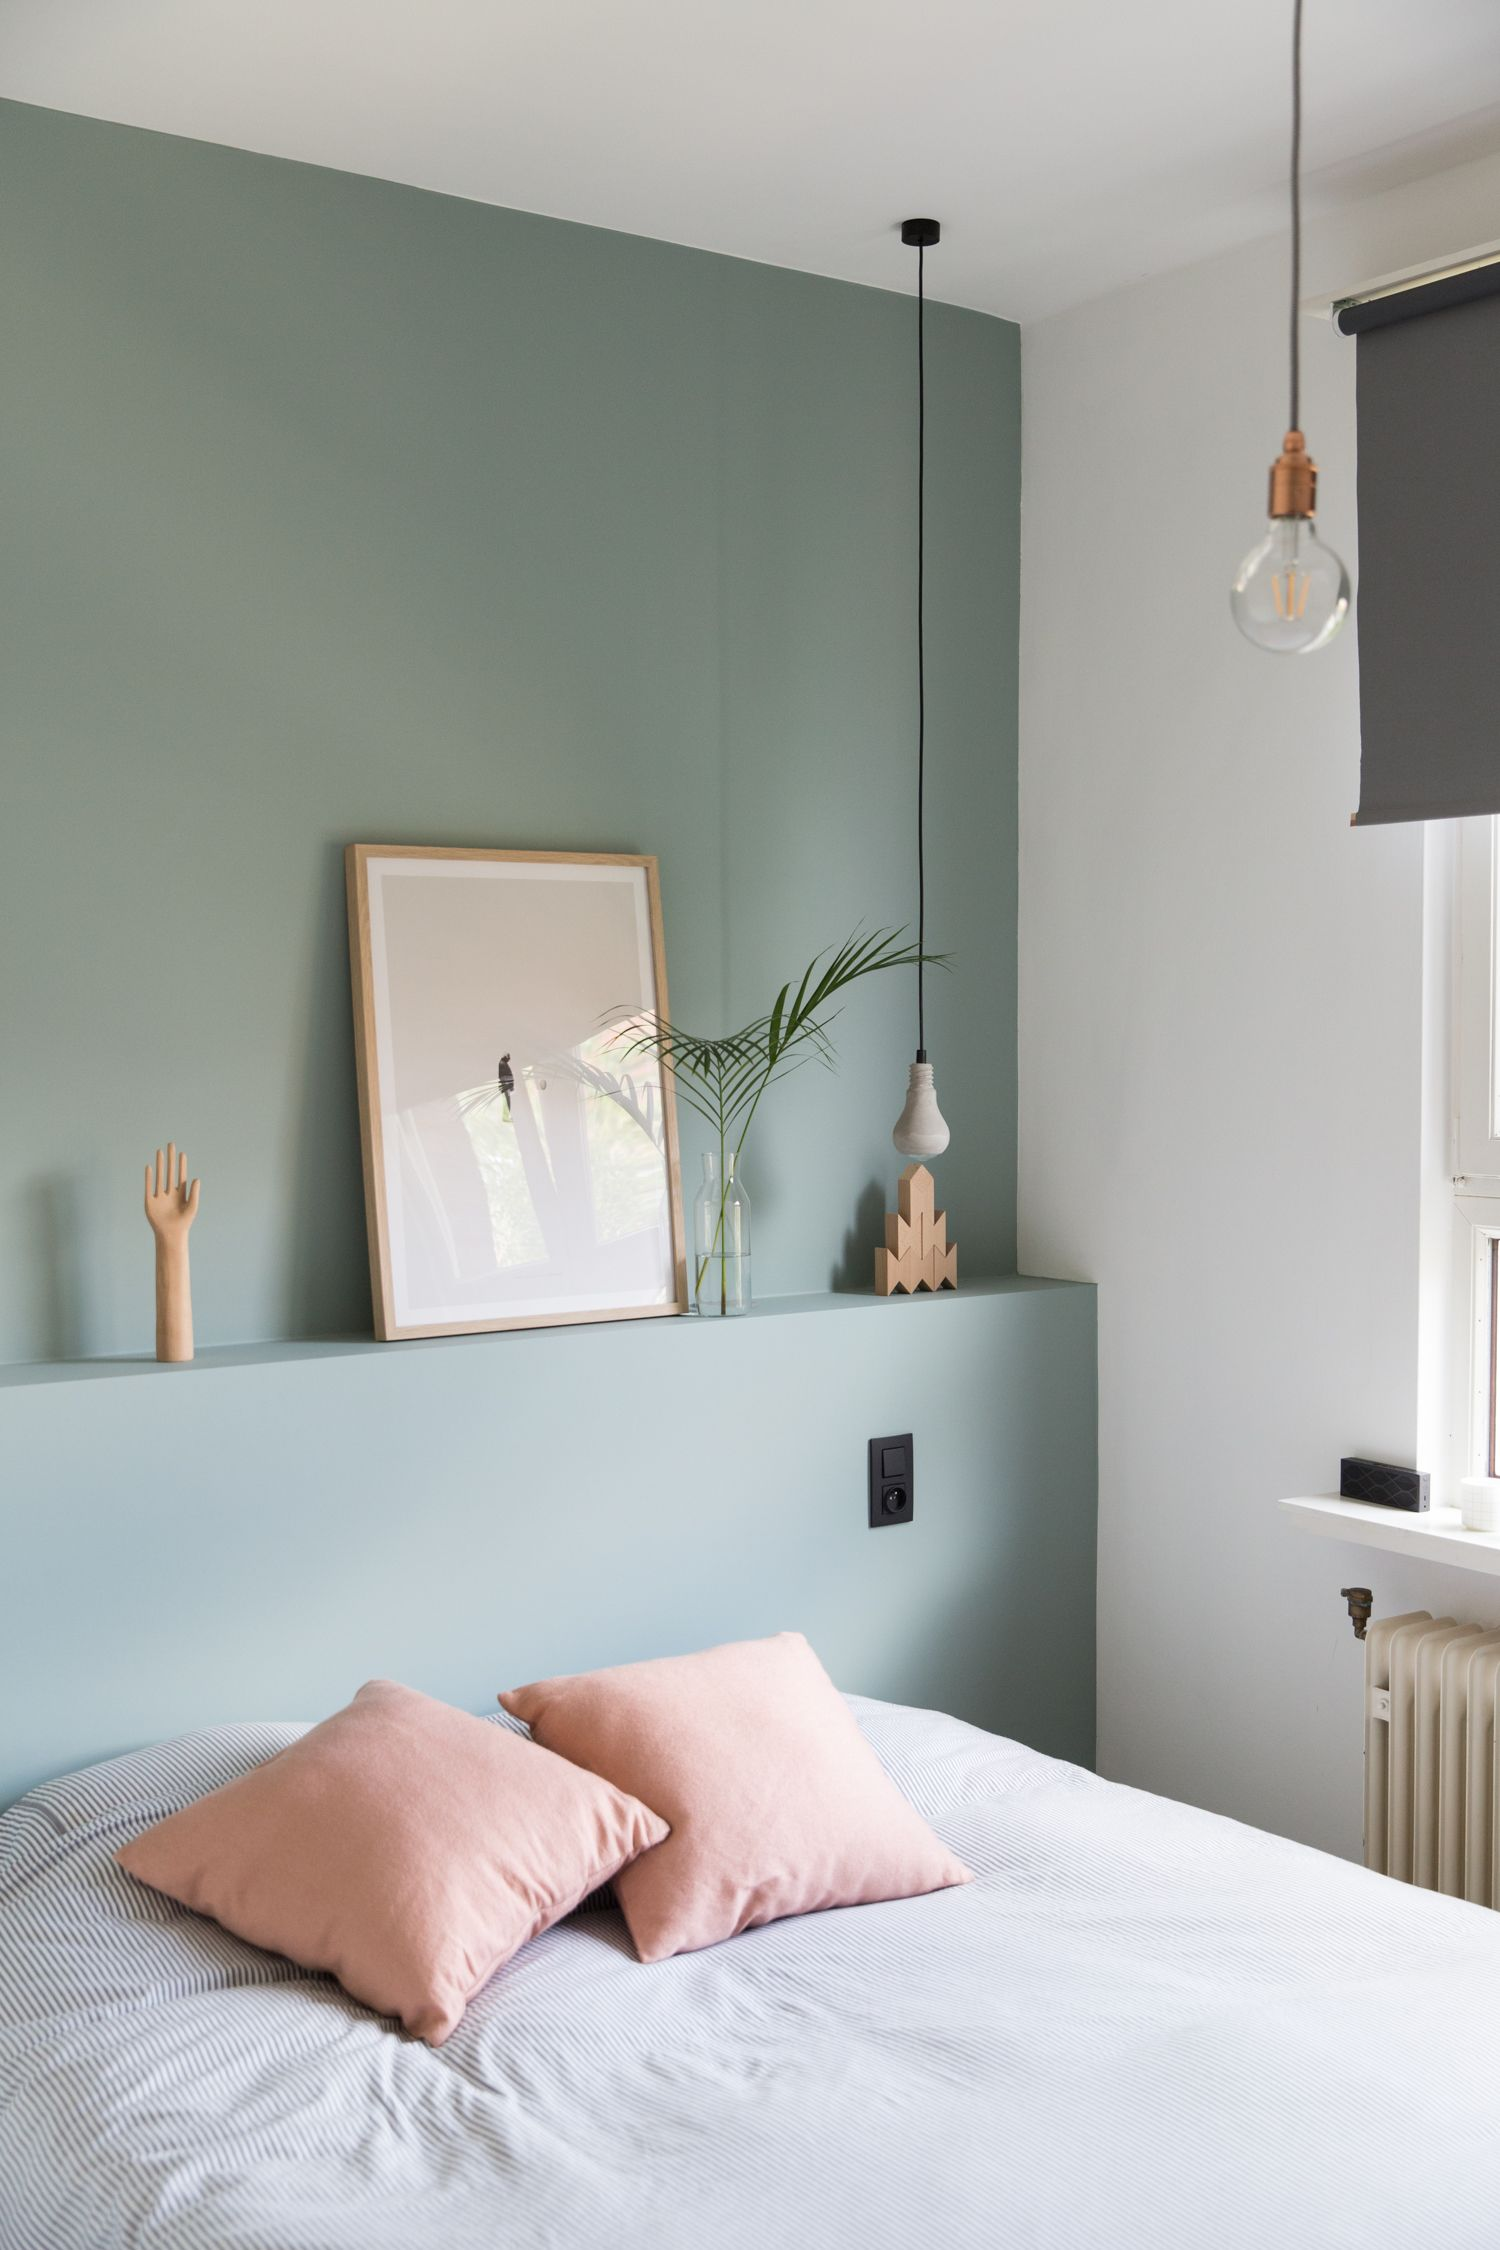 Bedroom Paint Colors Bedrooms Decor With Green Walls Gray And Decorating